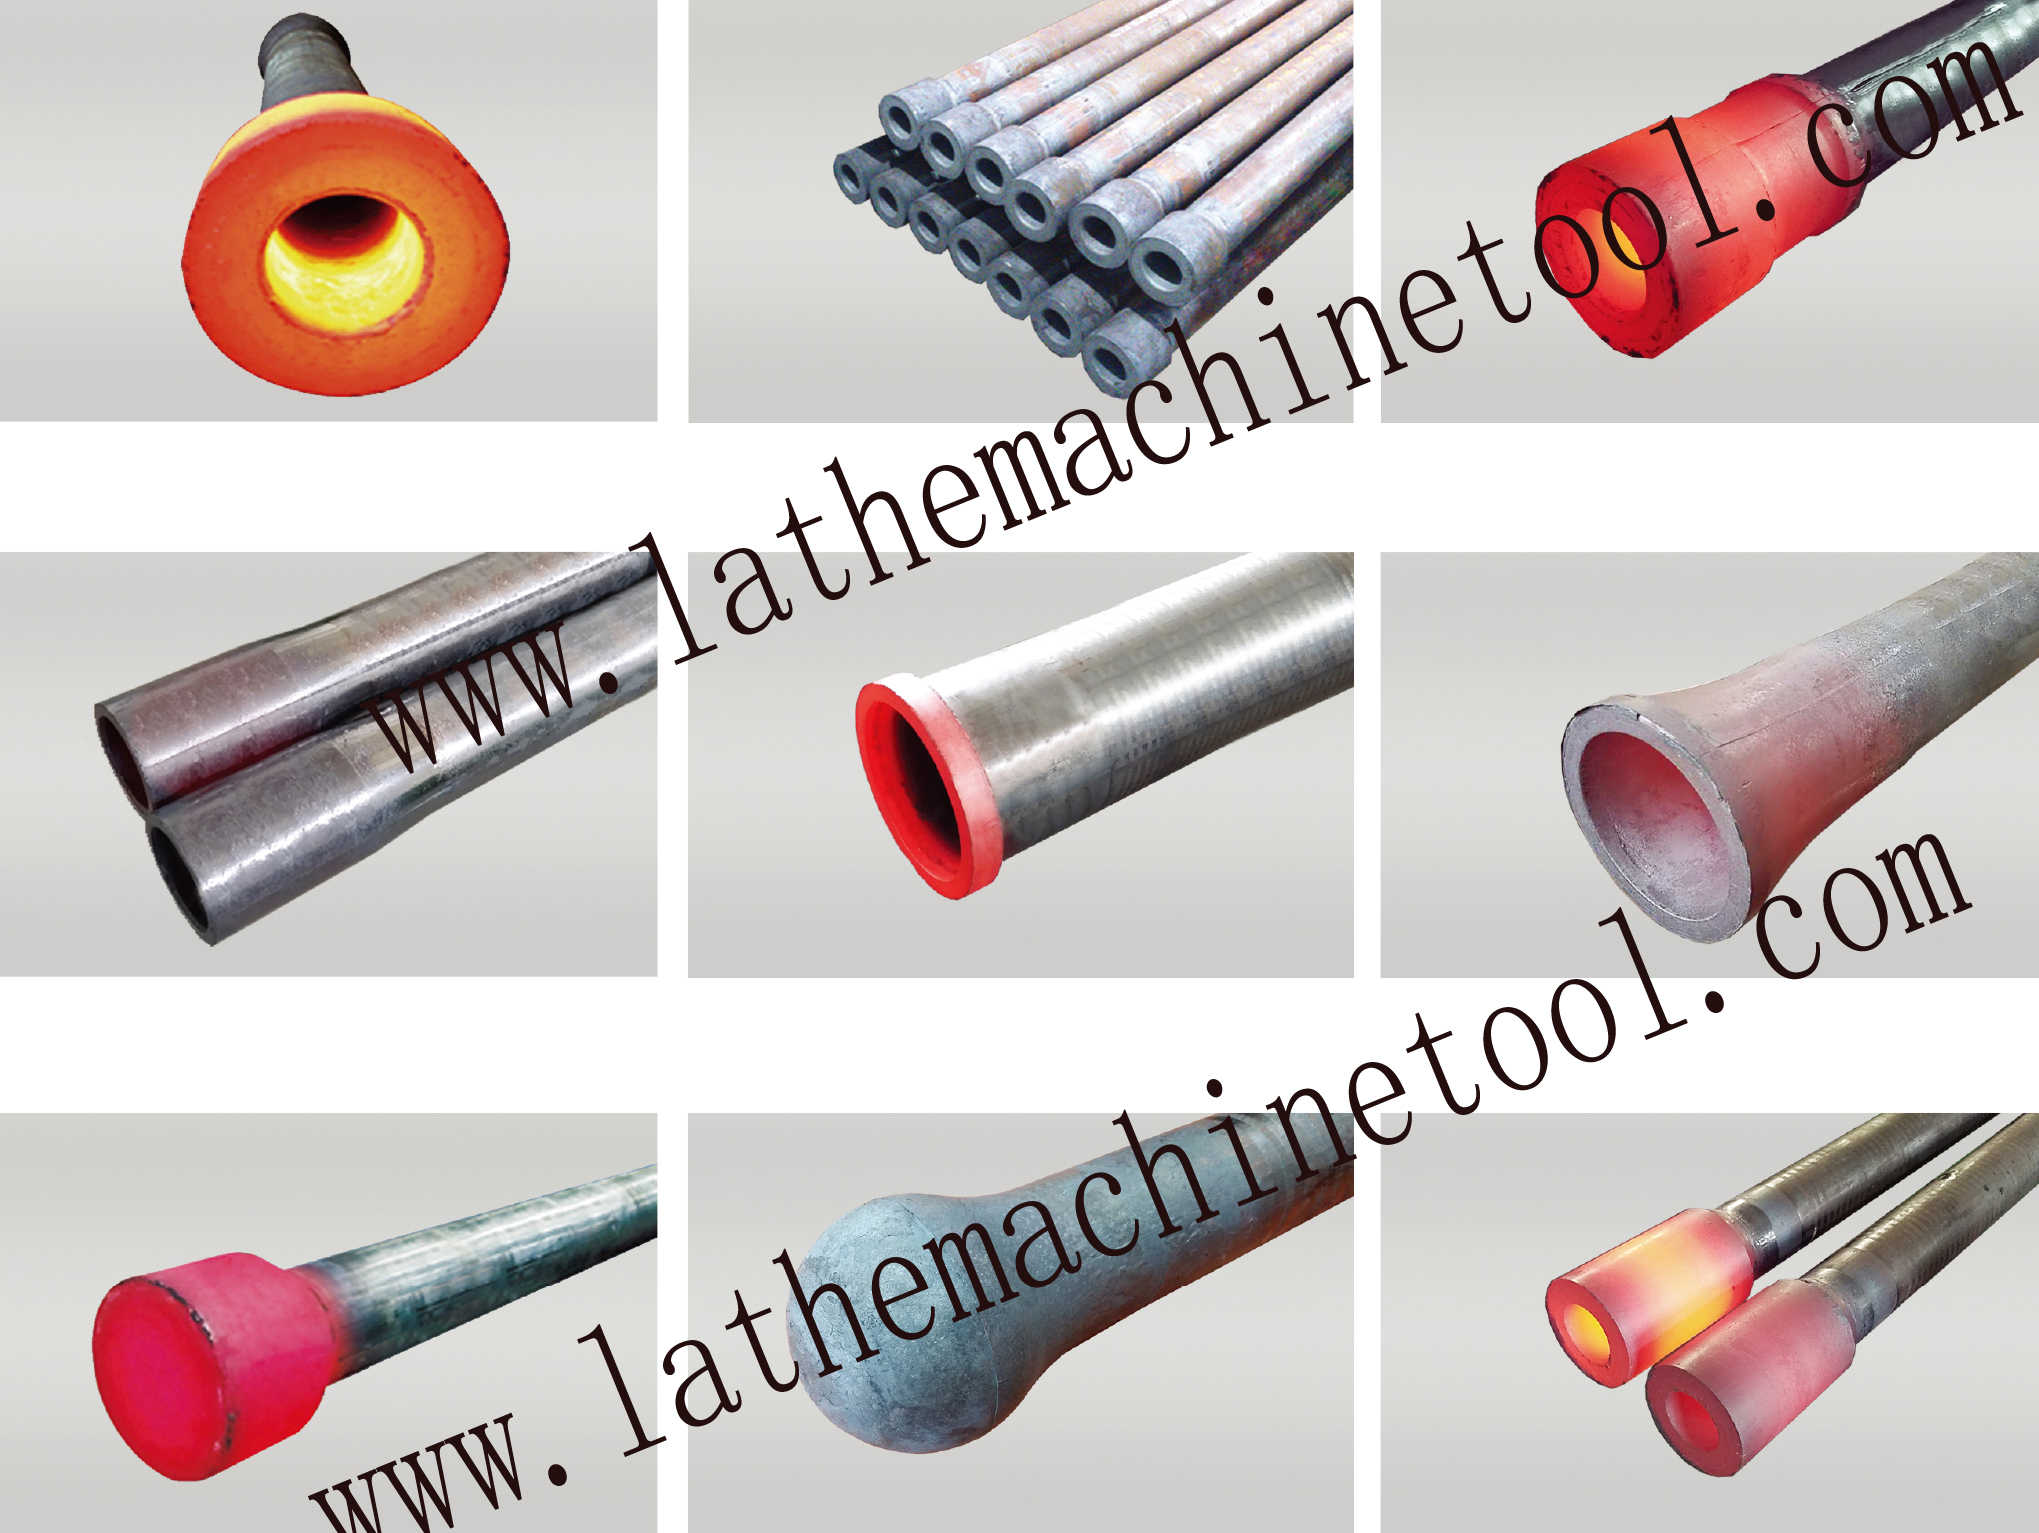 Tube End Expanding Machine for Upset Forging of Oil Tubing